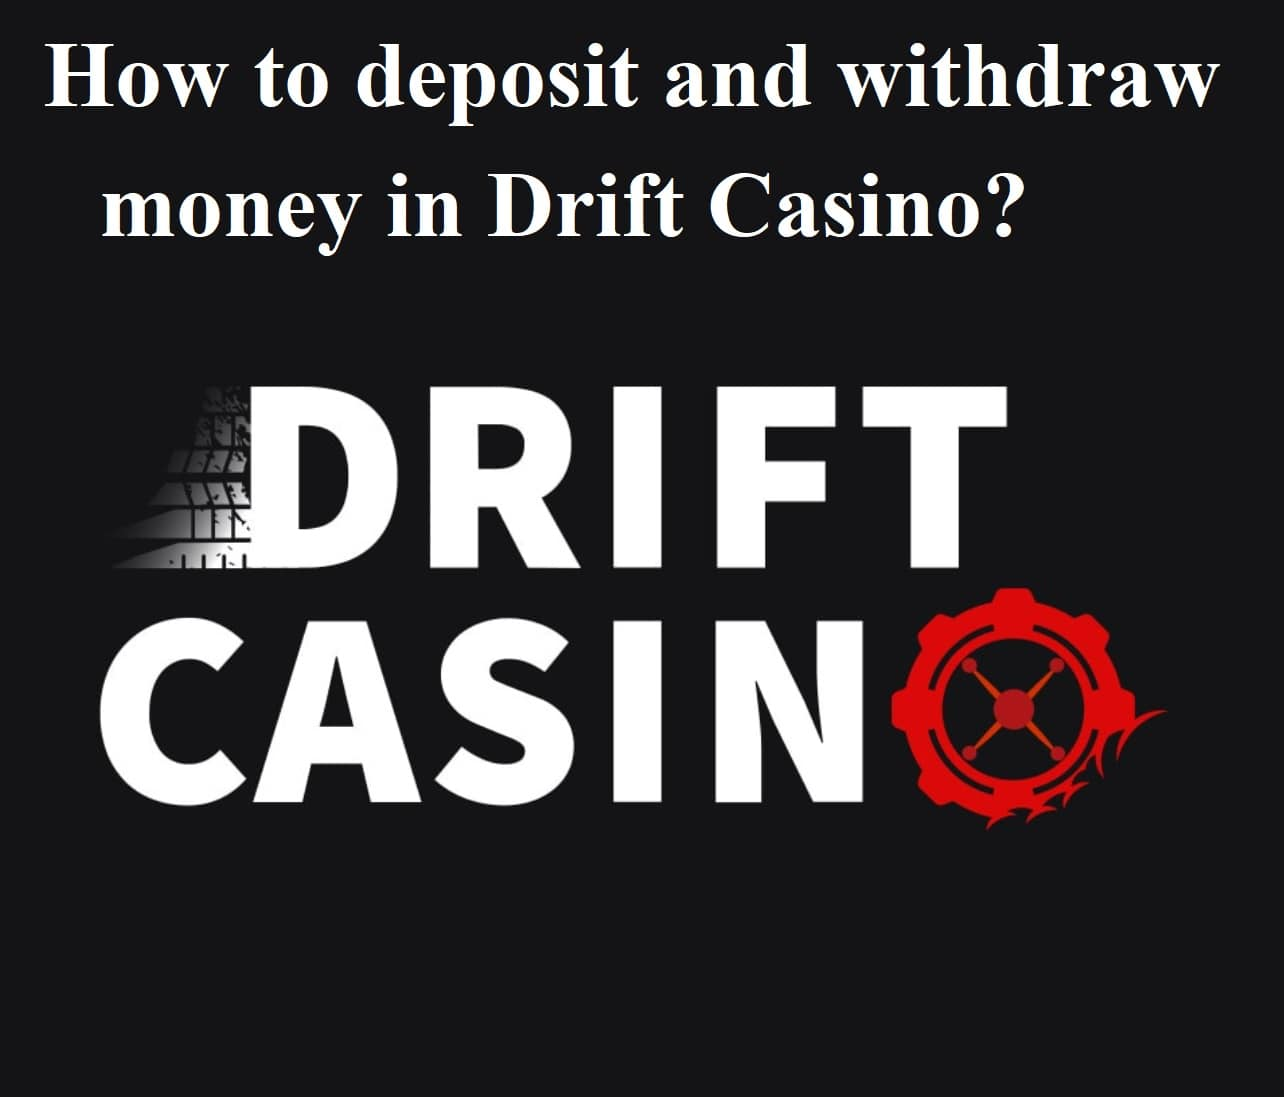 Depositing and withdrawing money in casino Drift